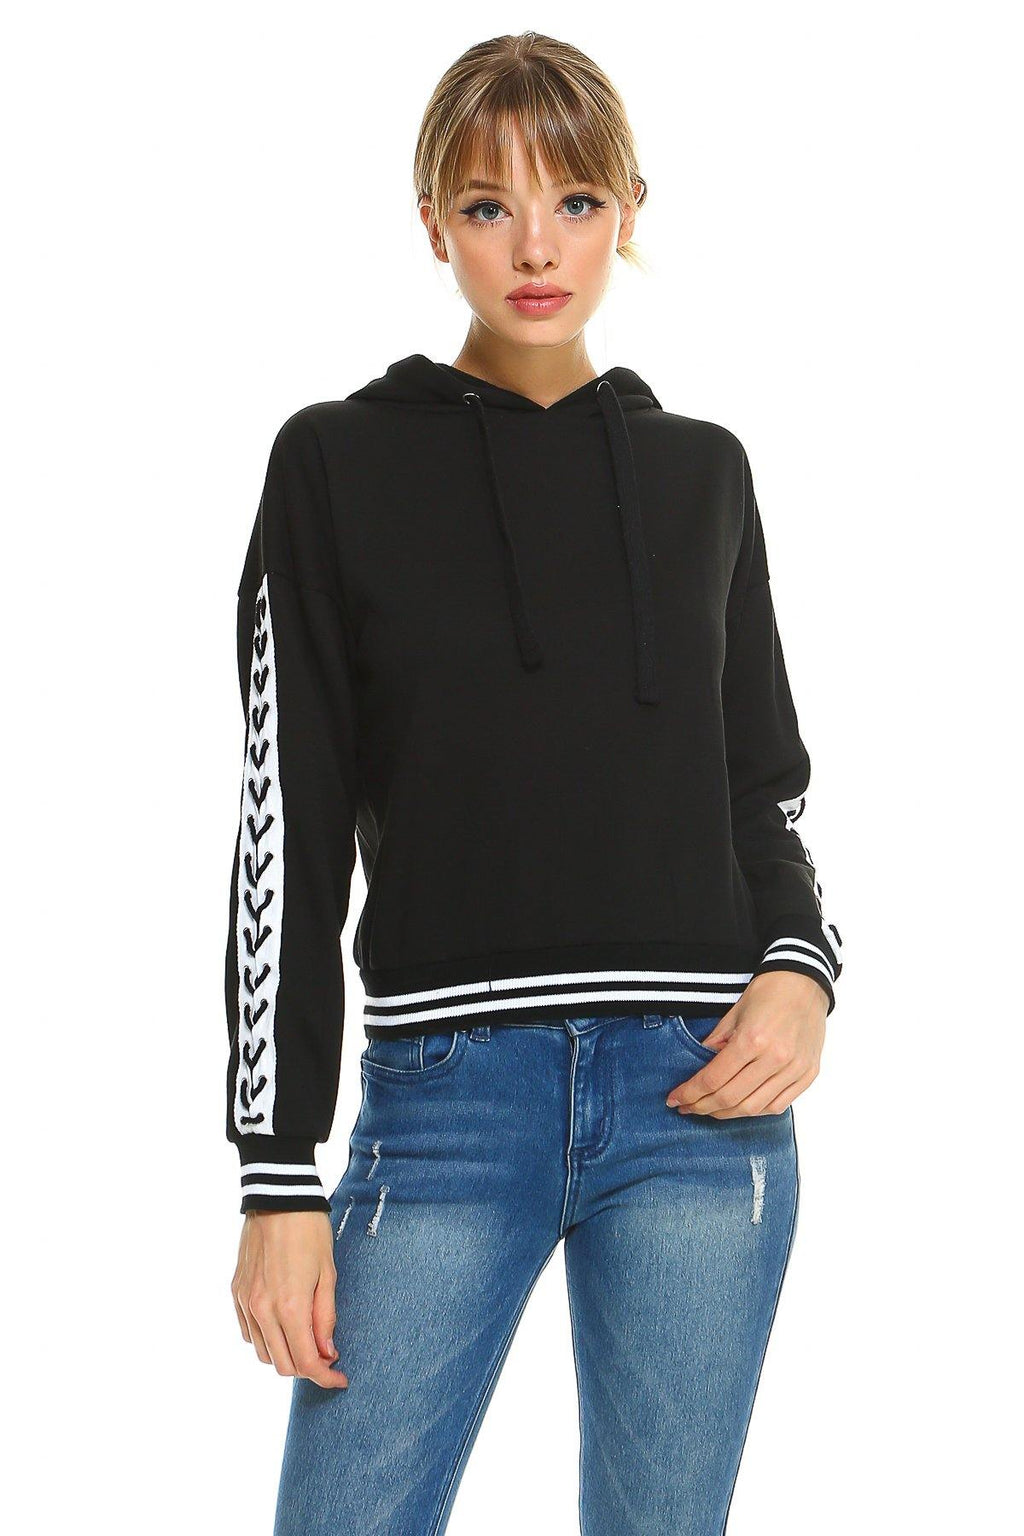 MILEY AND MOLLY MILEY + MOLLY  Fleece Lace Up Detail Sleeve Hooded Top